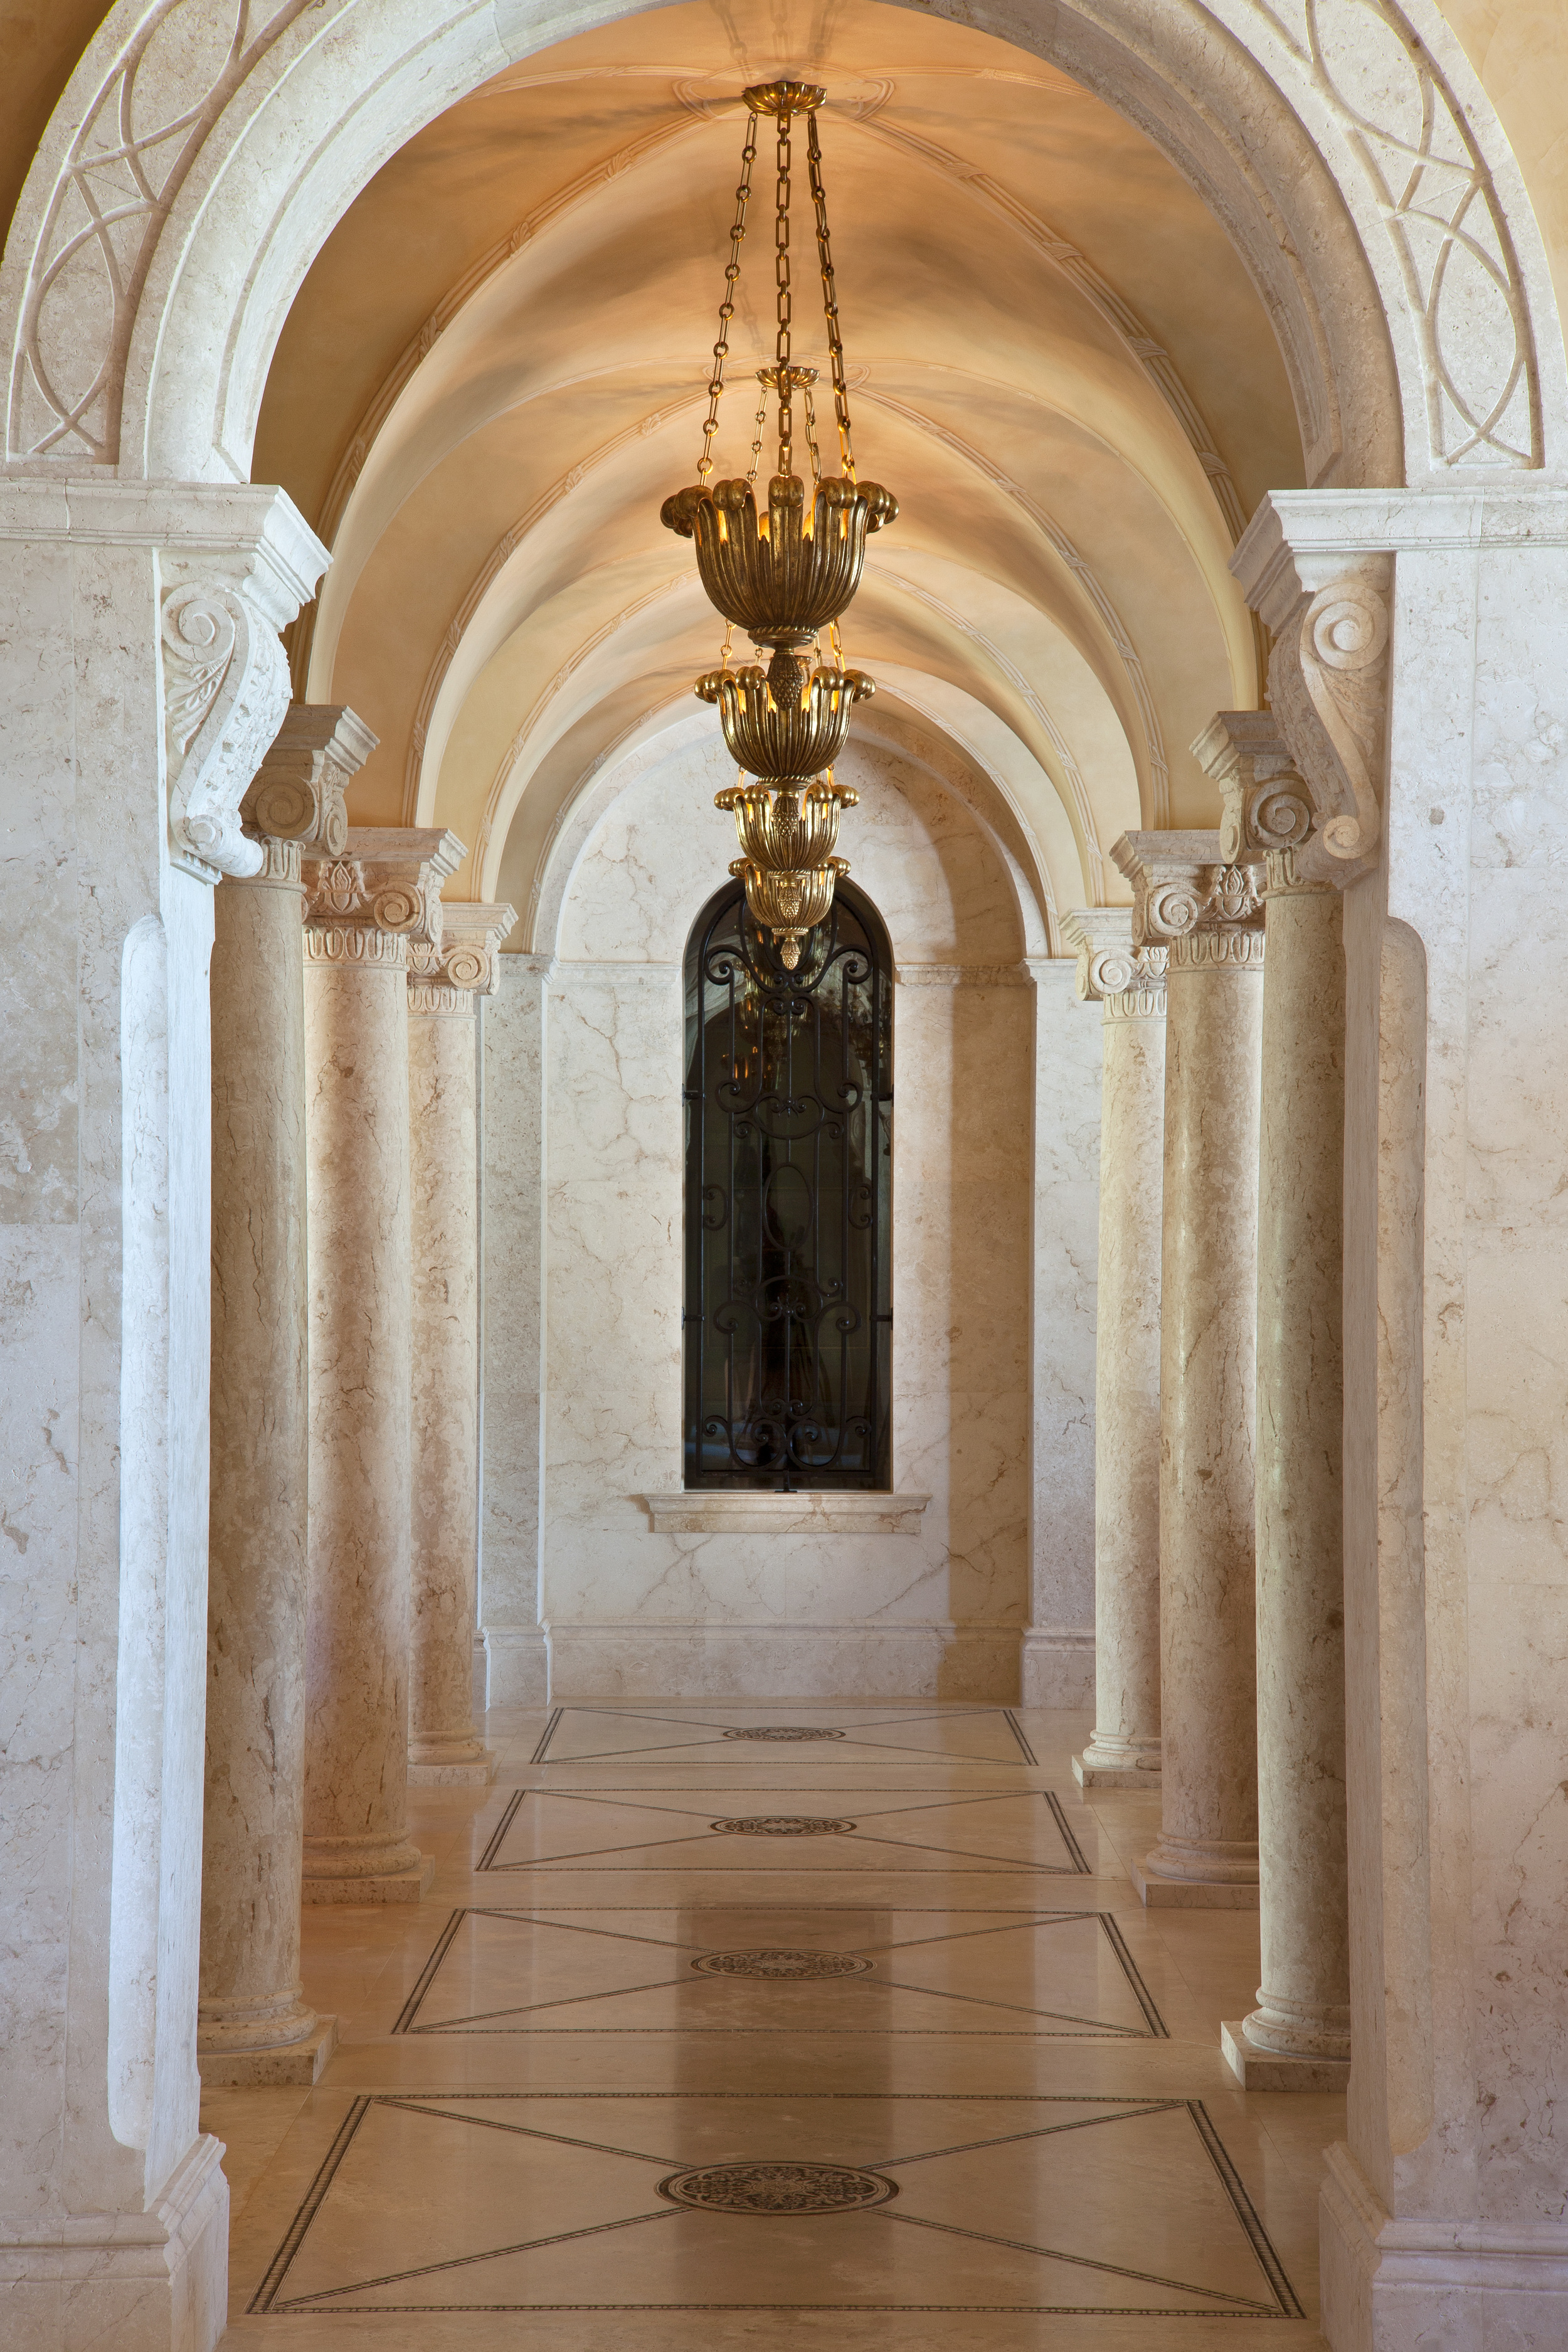 The groin vaulted corridor was designed to provide access to the great room on the west side of the house and culminates at the entrance to the wine cellar iron grille. The floor and ceiling were carefully planned out so that lanterns hang directly over the complex medallions laser etched into the limestone flooring.